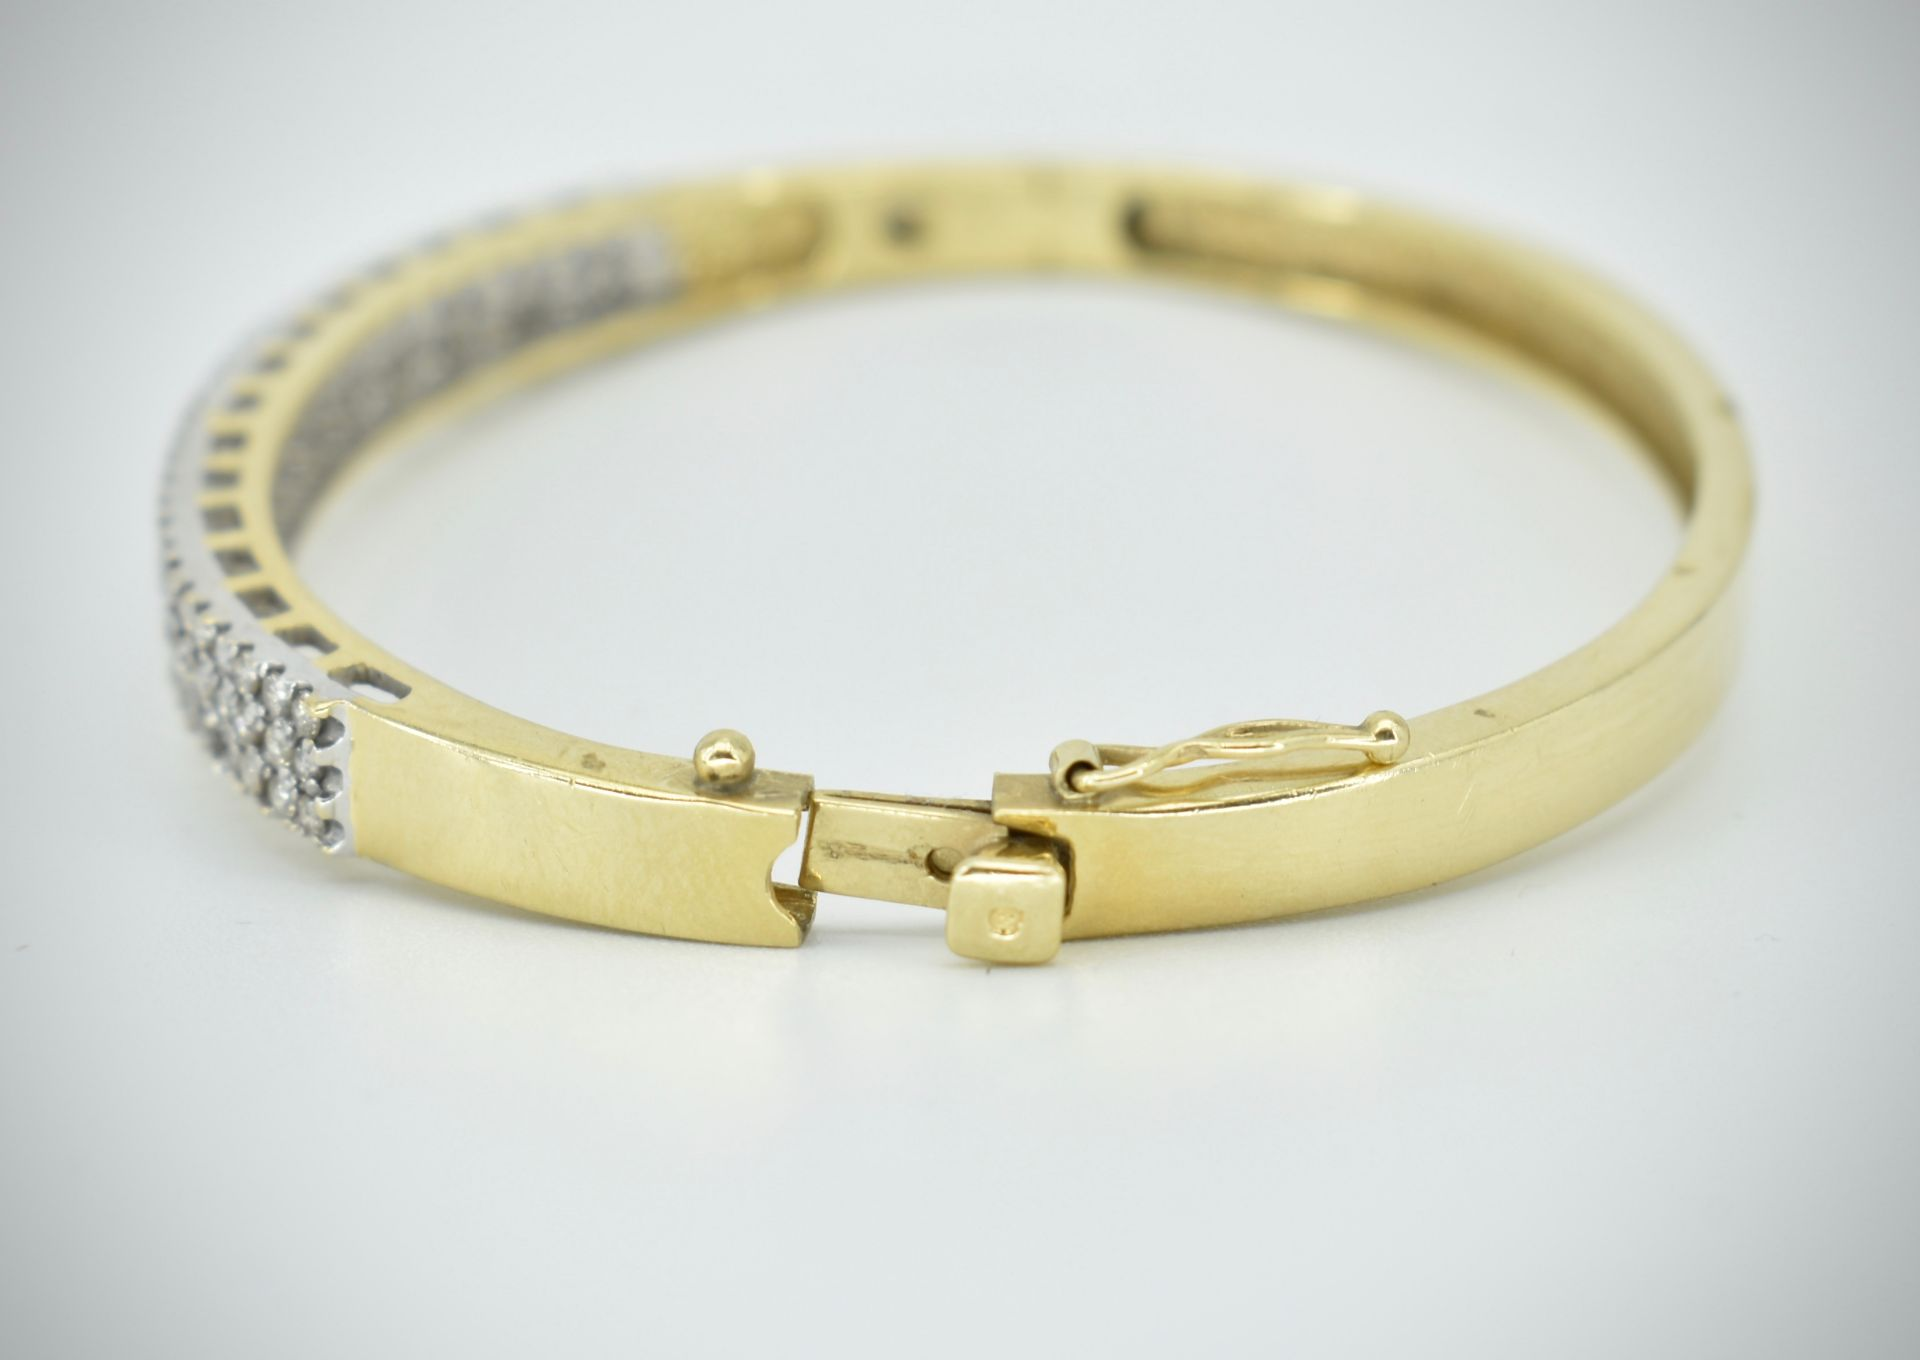 A 14ct Gold & Diamond Pave Fronted Bracelet - Bangle - Image 3 of 7